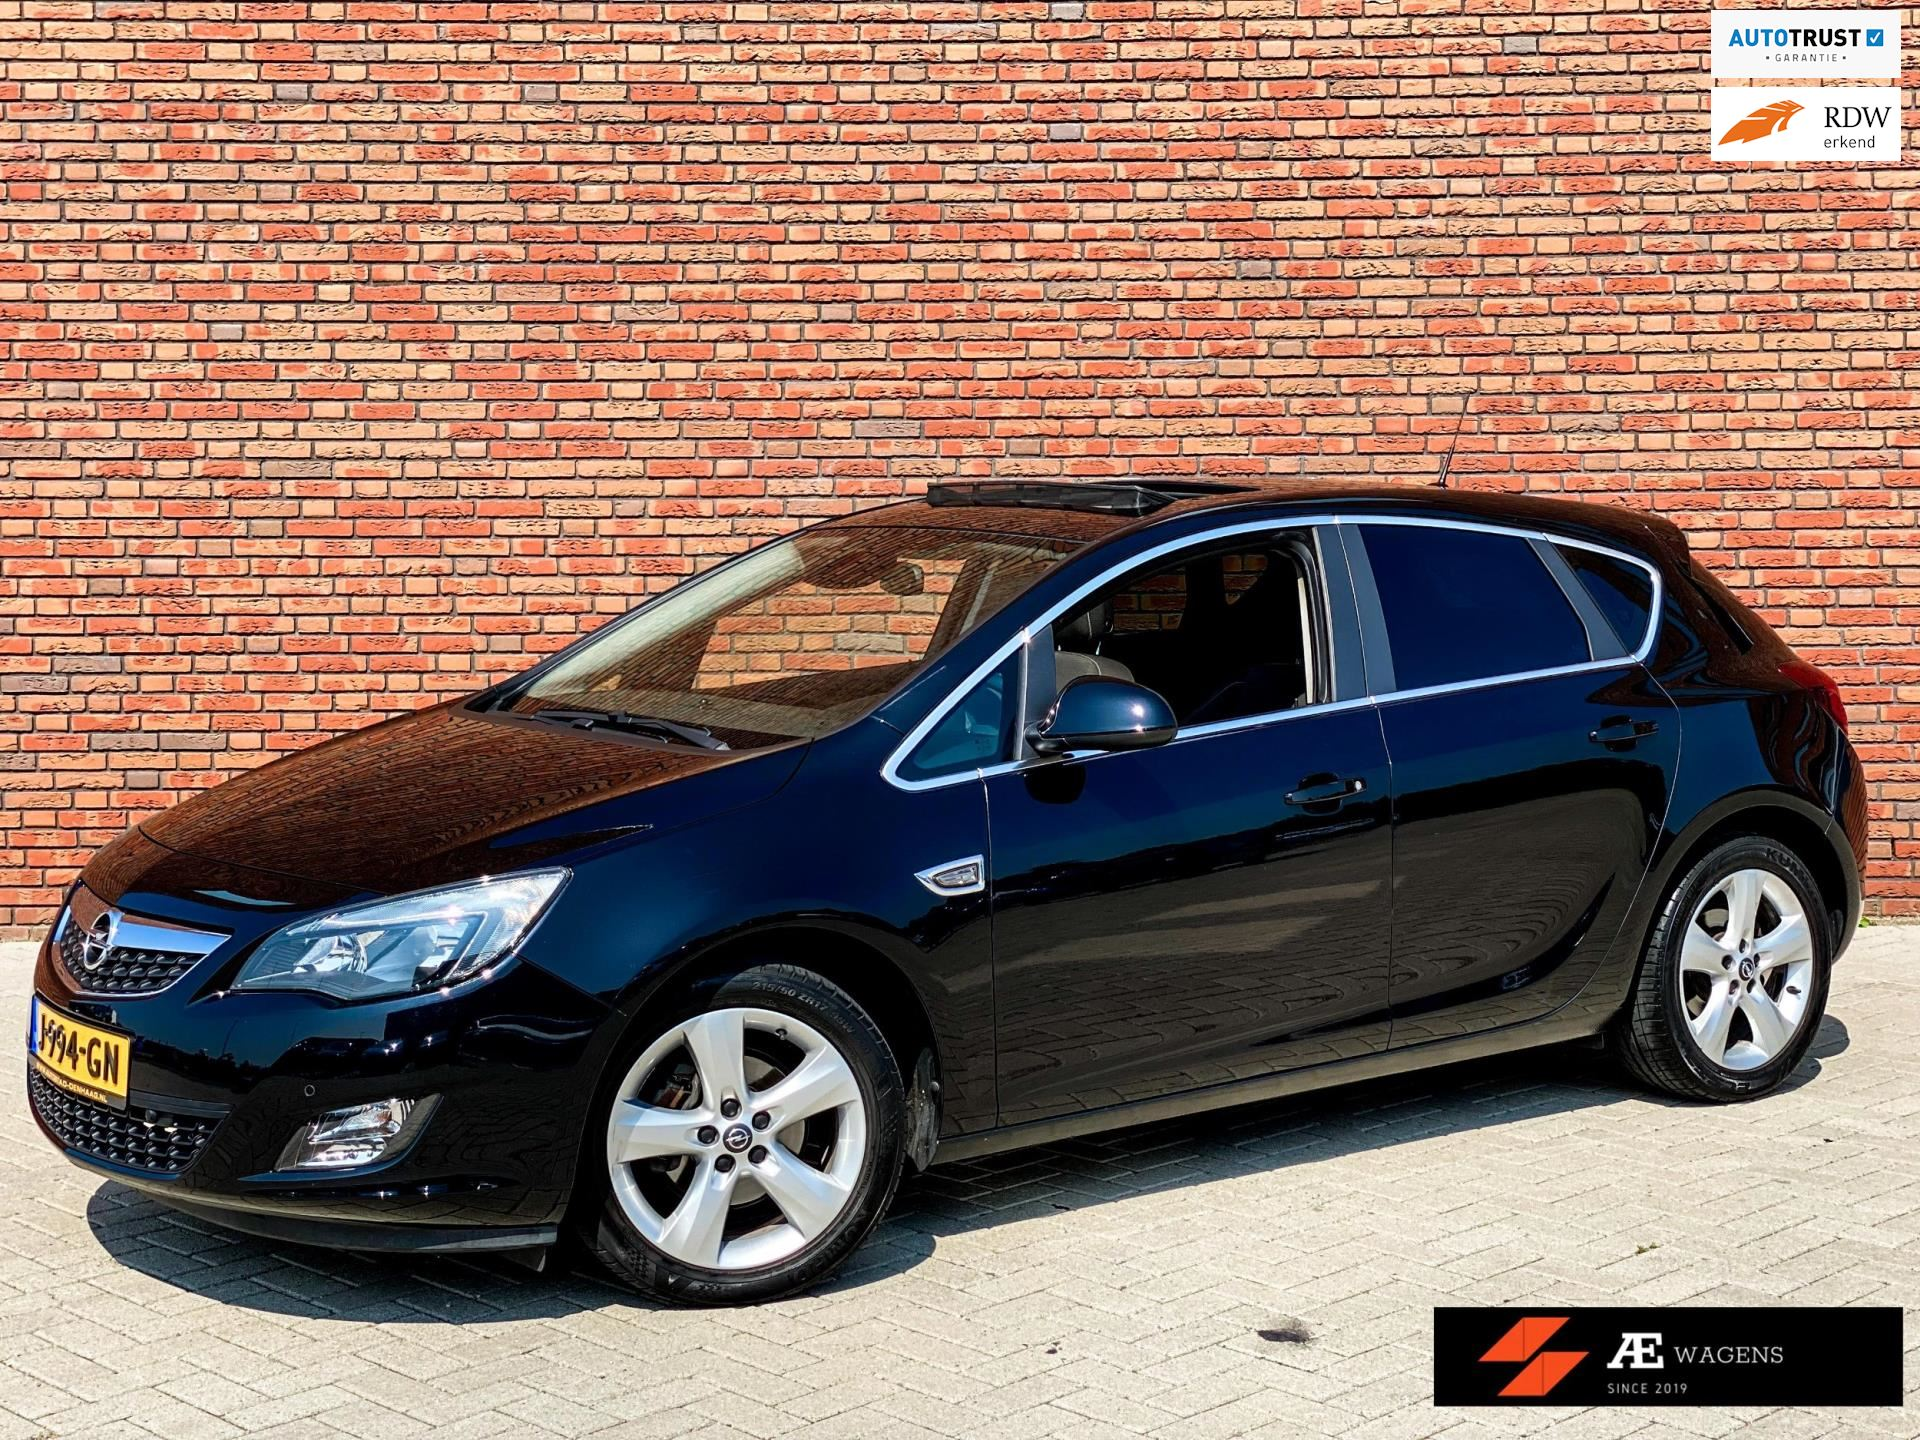 Opel Astra occasion - AE Wagens